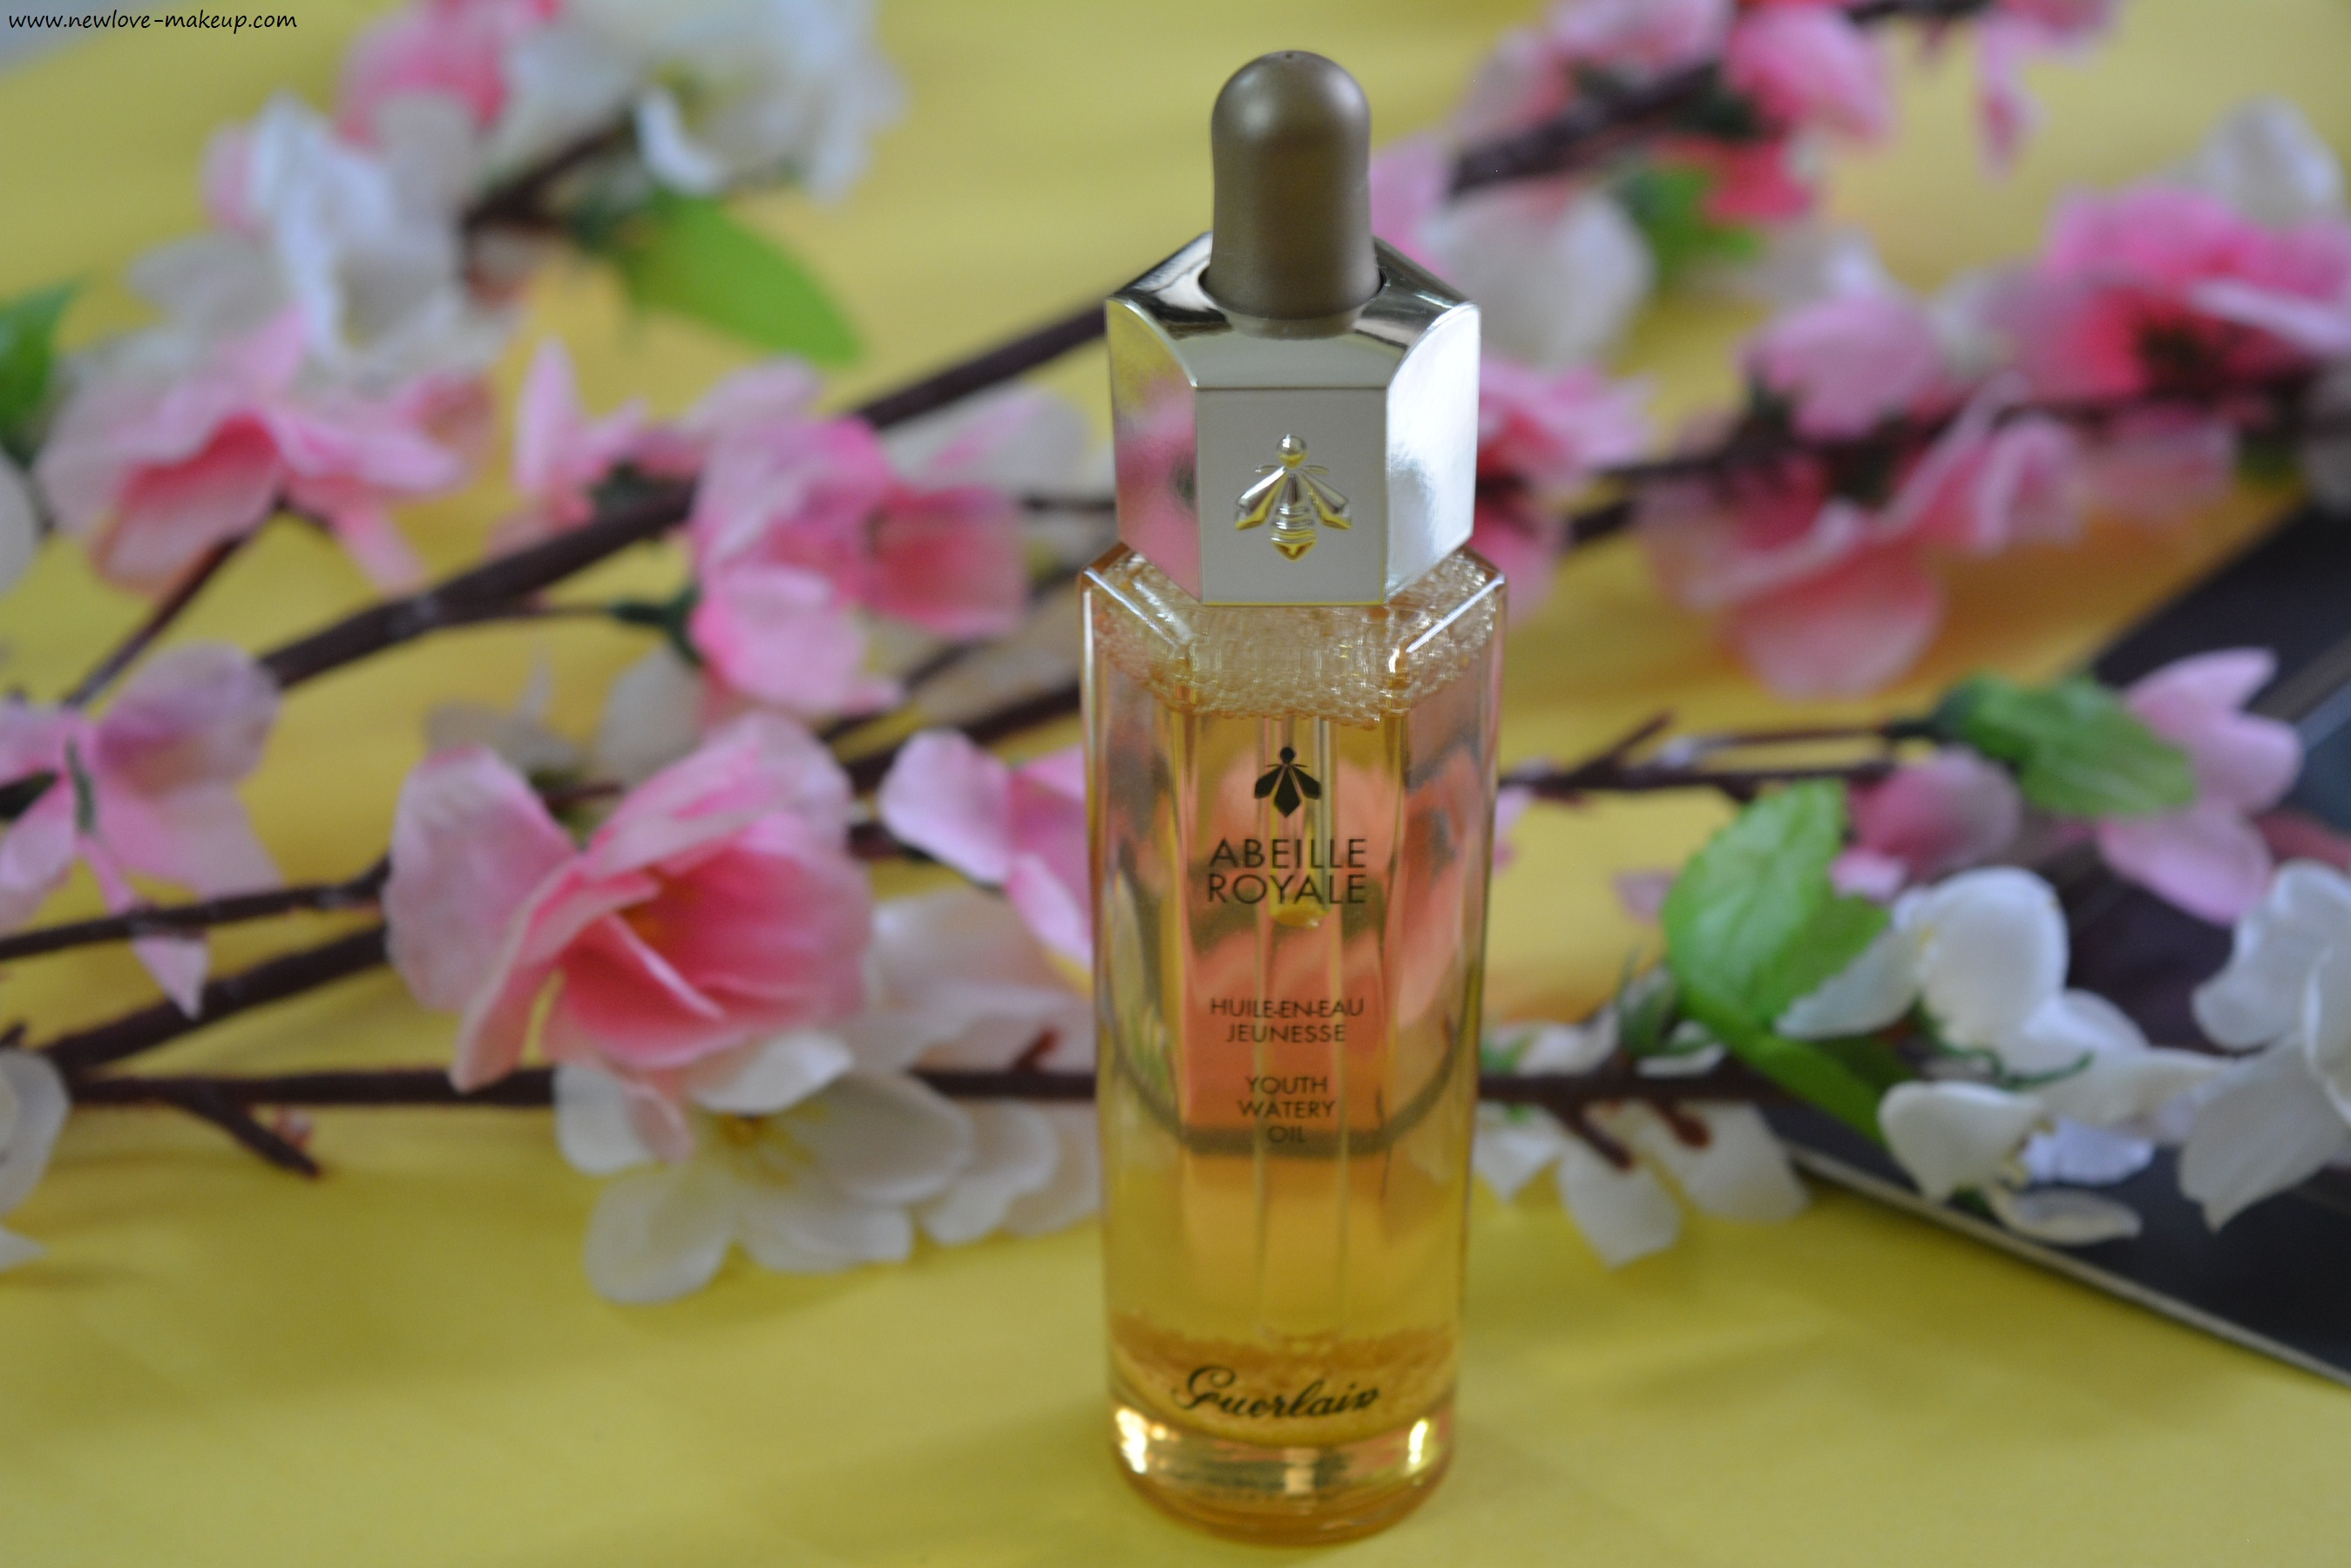 Guerlain Abeille Royale Youth Watery Oil, Kiss Kiss Matte Lipstick Review